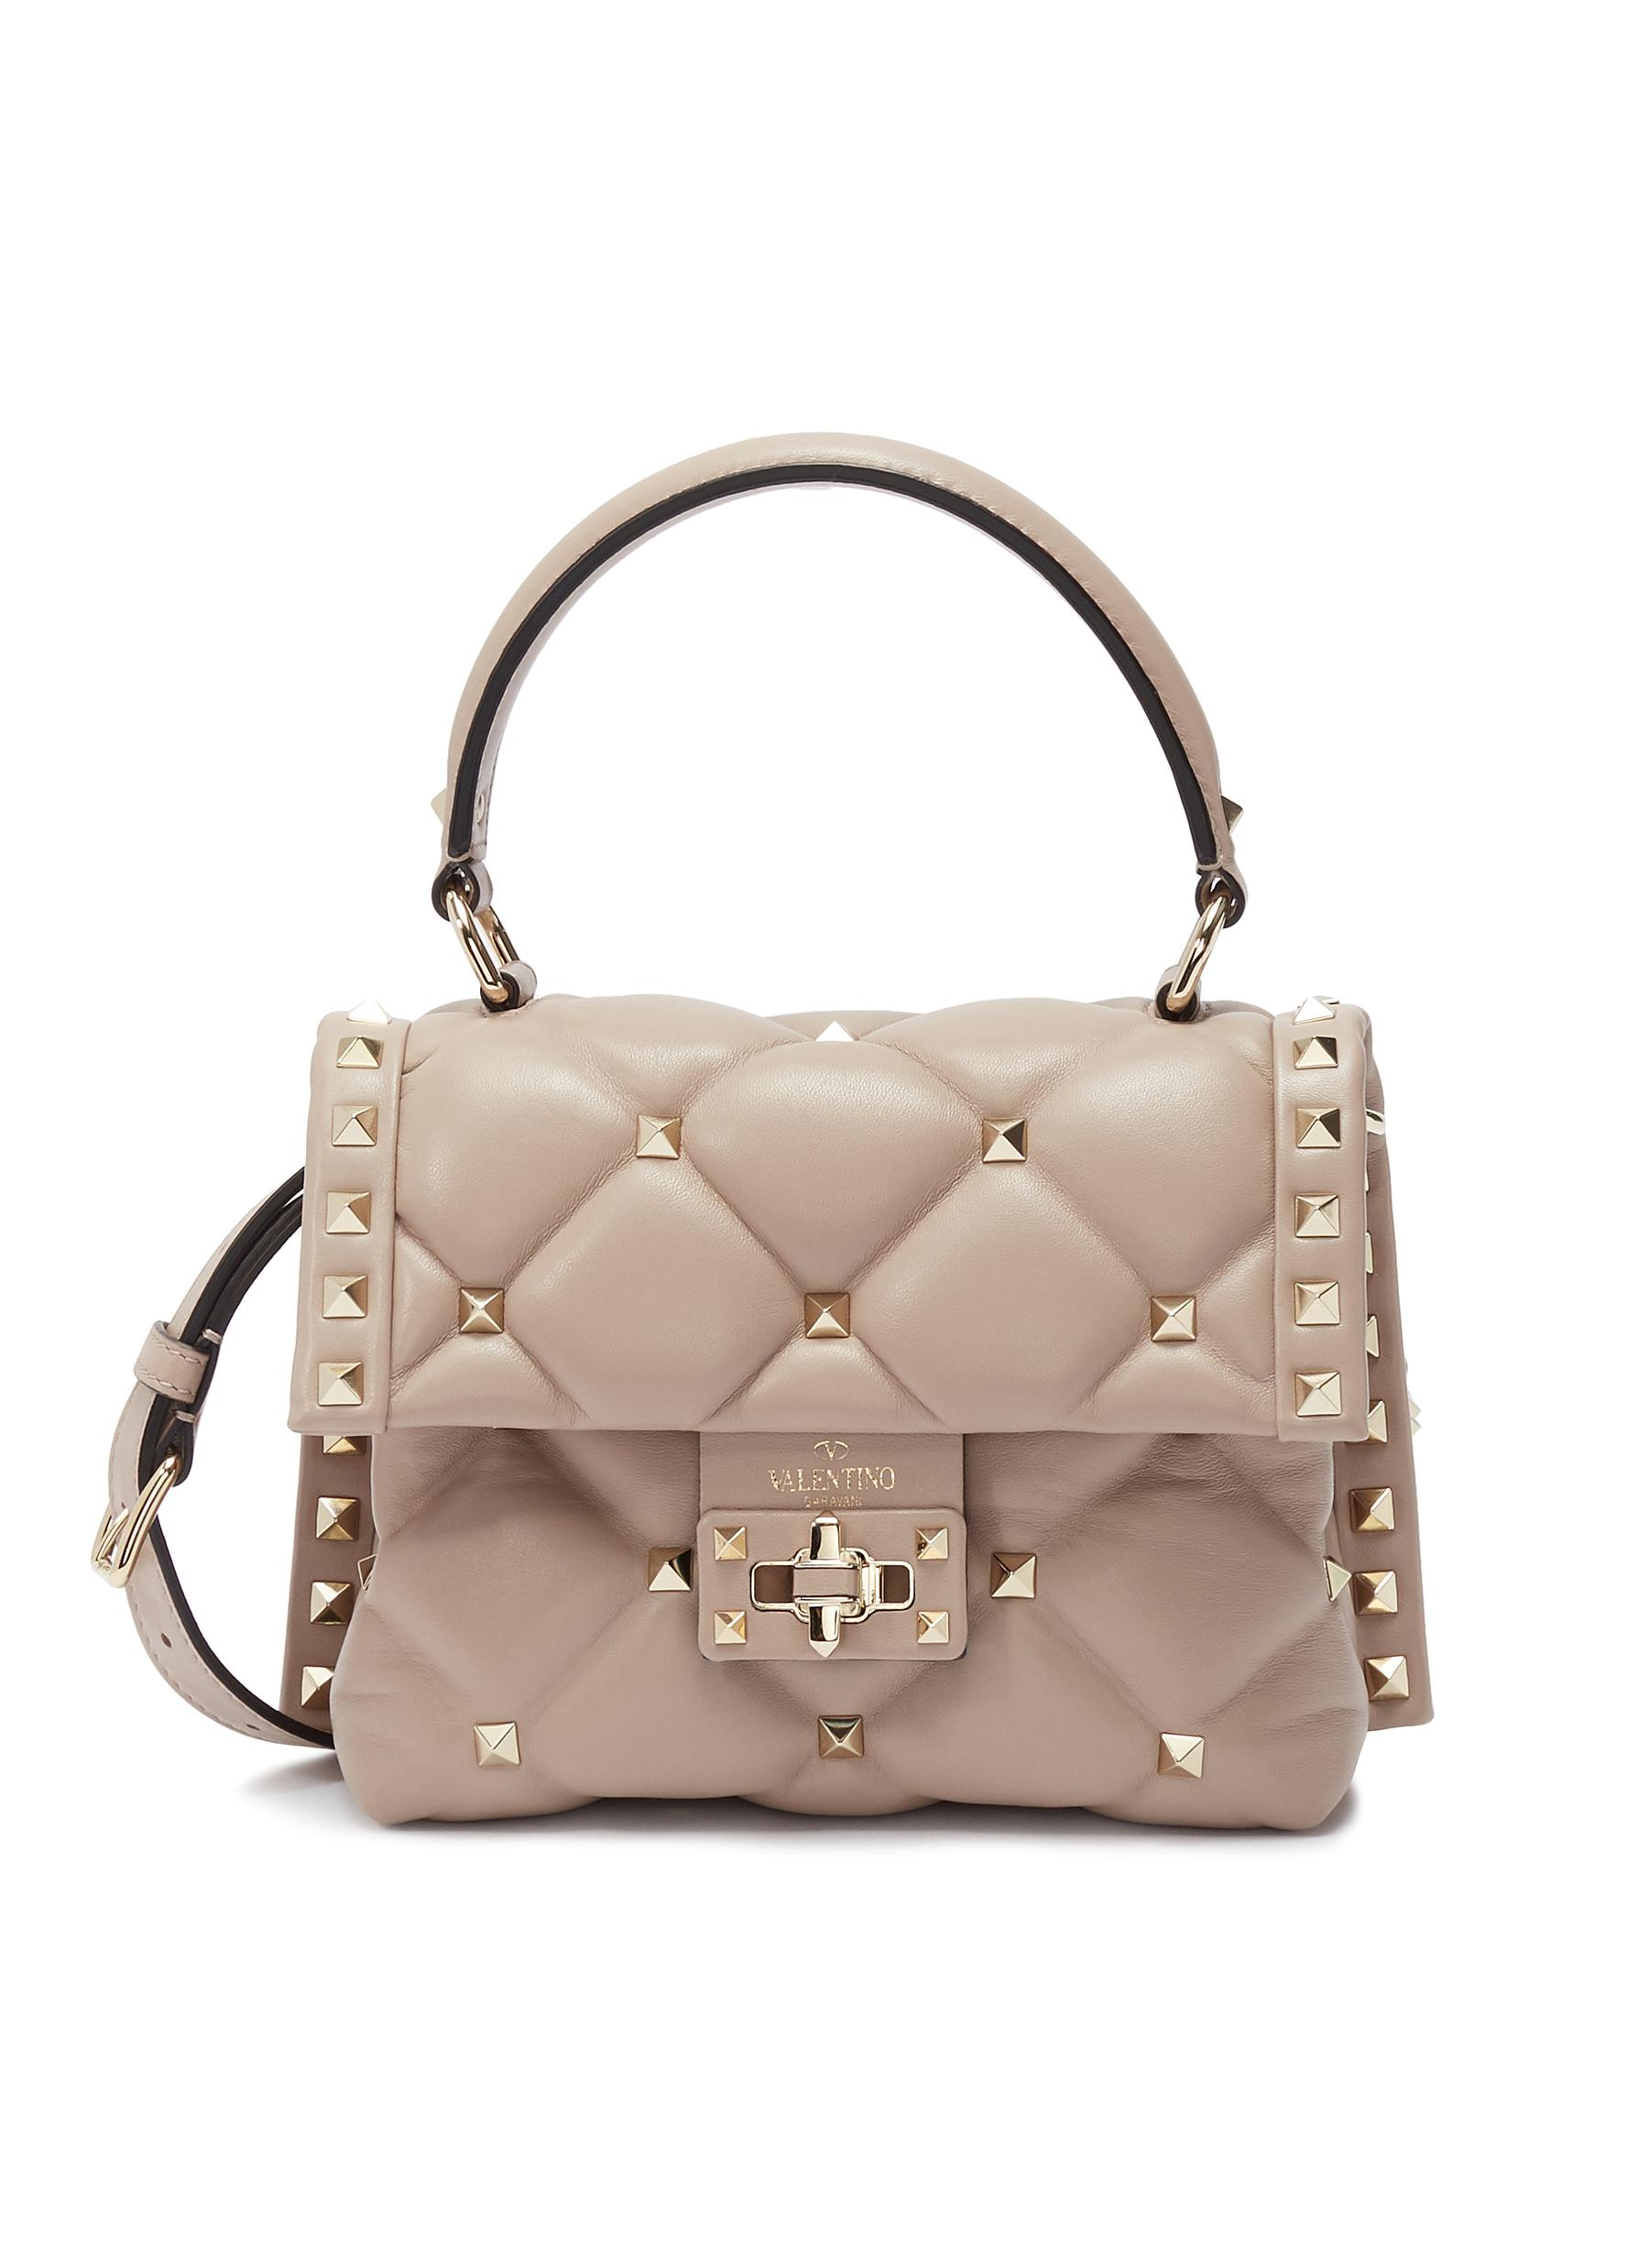 5769407faa Main View - Click To Enlarge - VALENTINO - 'Candystud' mini quilted leather  shoulder